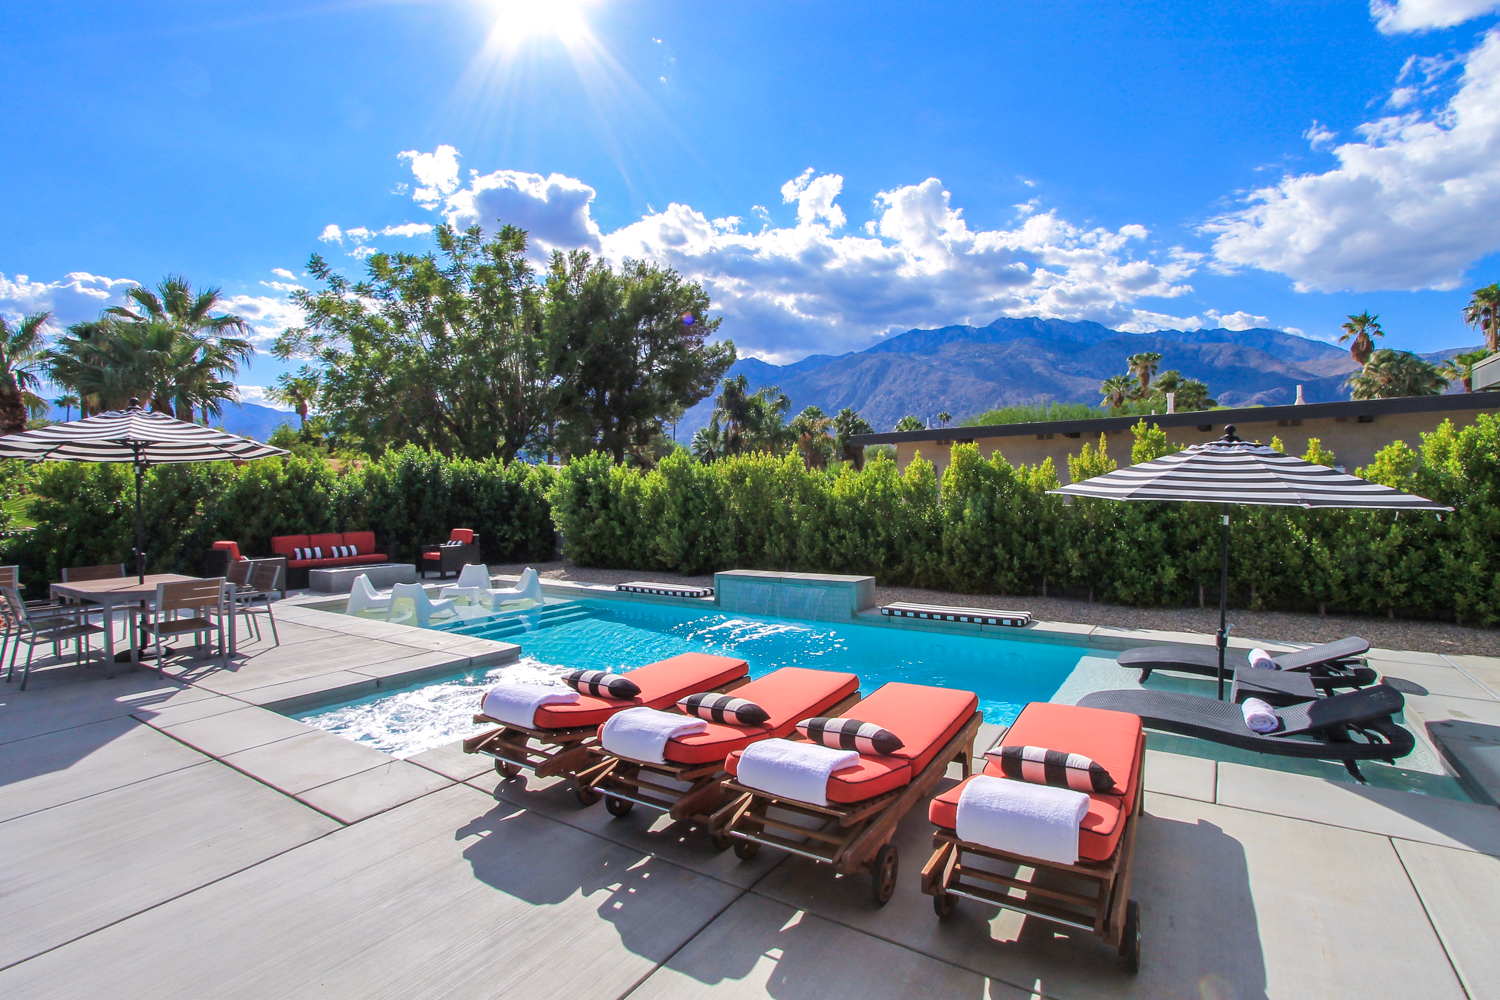 Palms-at-Park-Palm-Springs-Vacation-Rental-Home-14.jpg